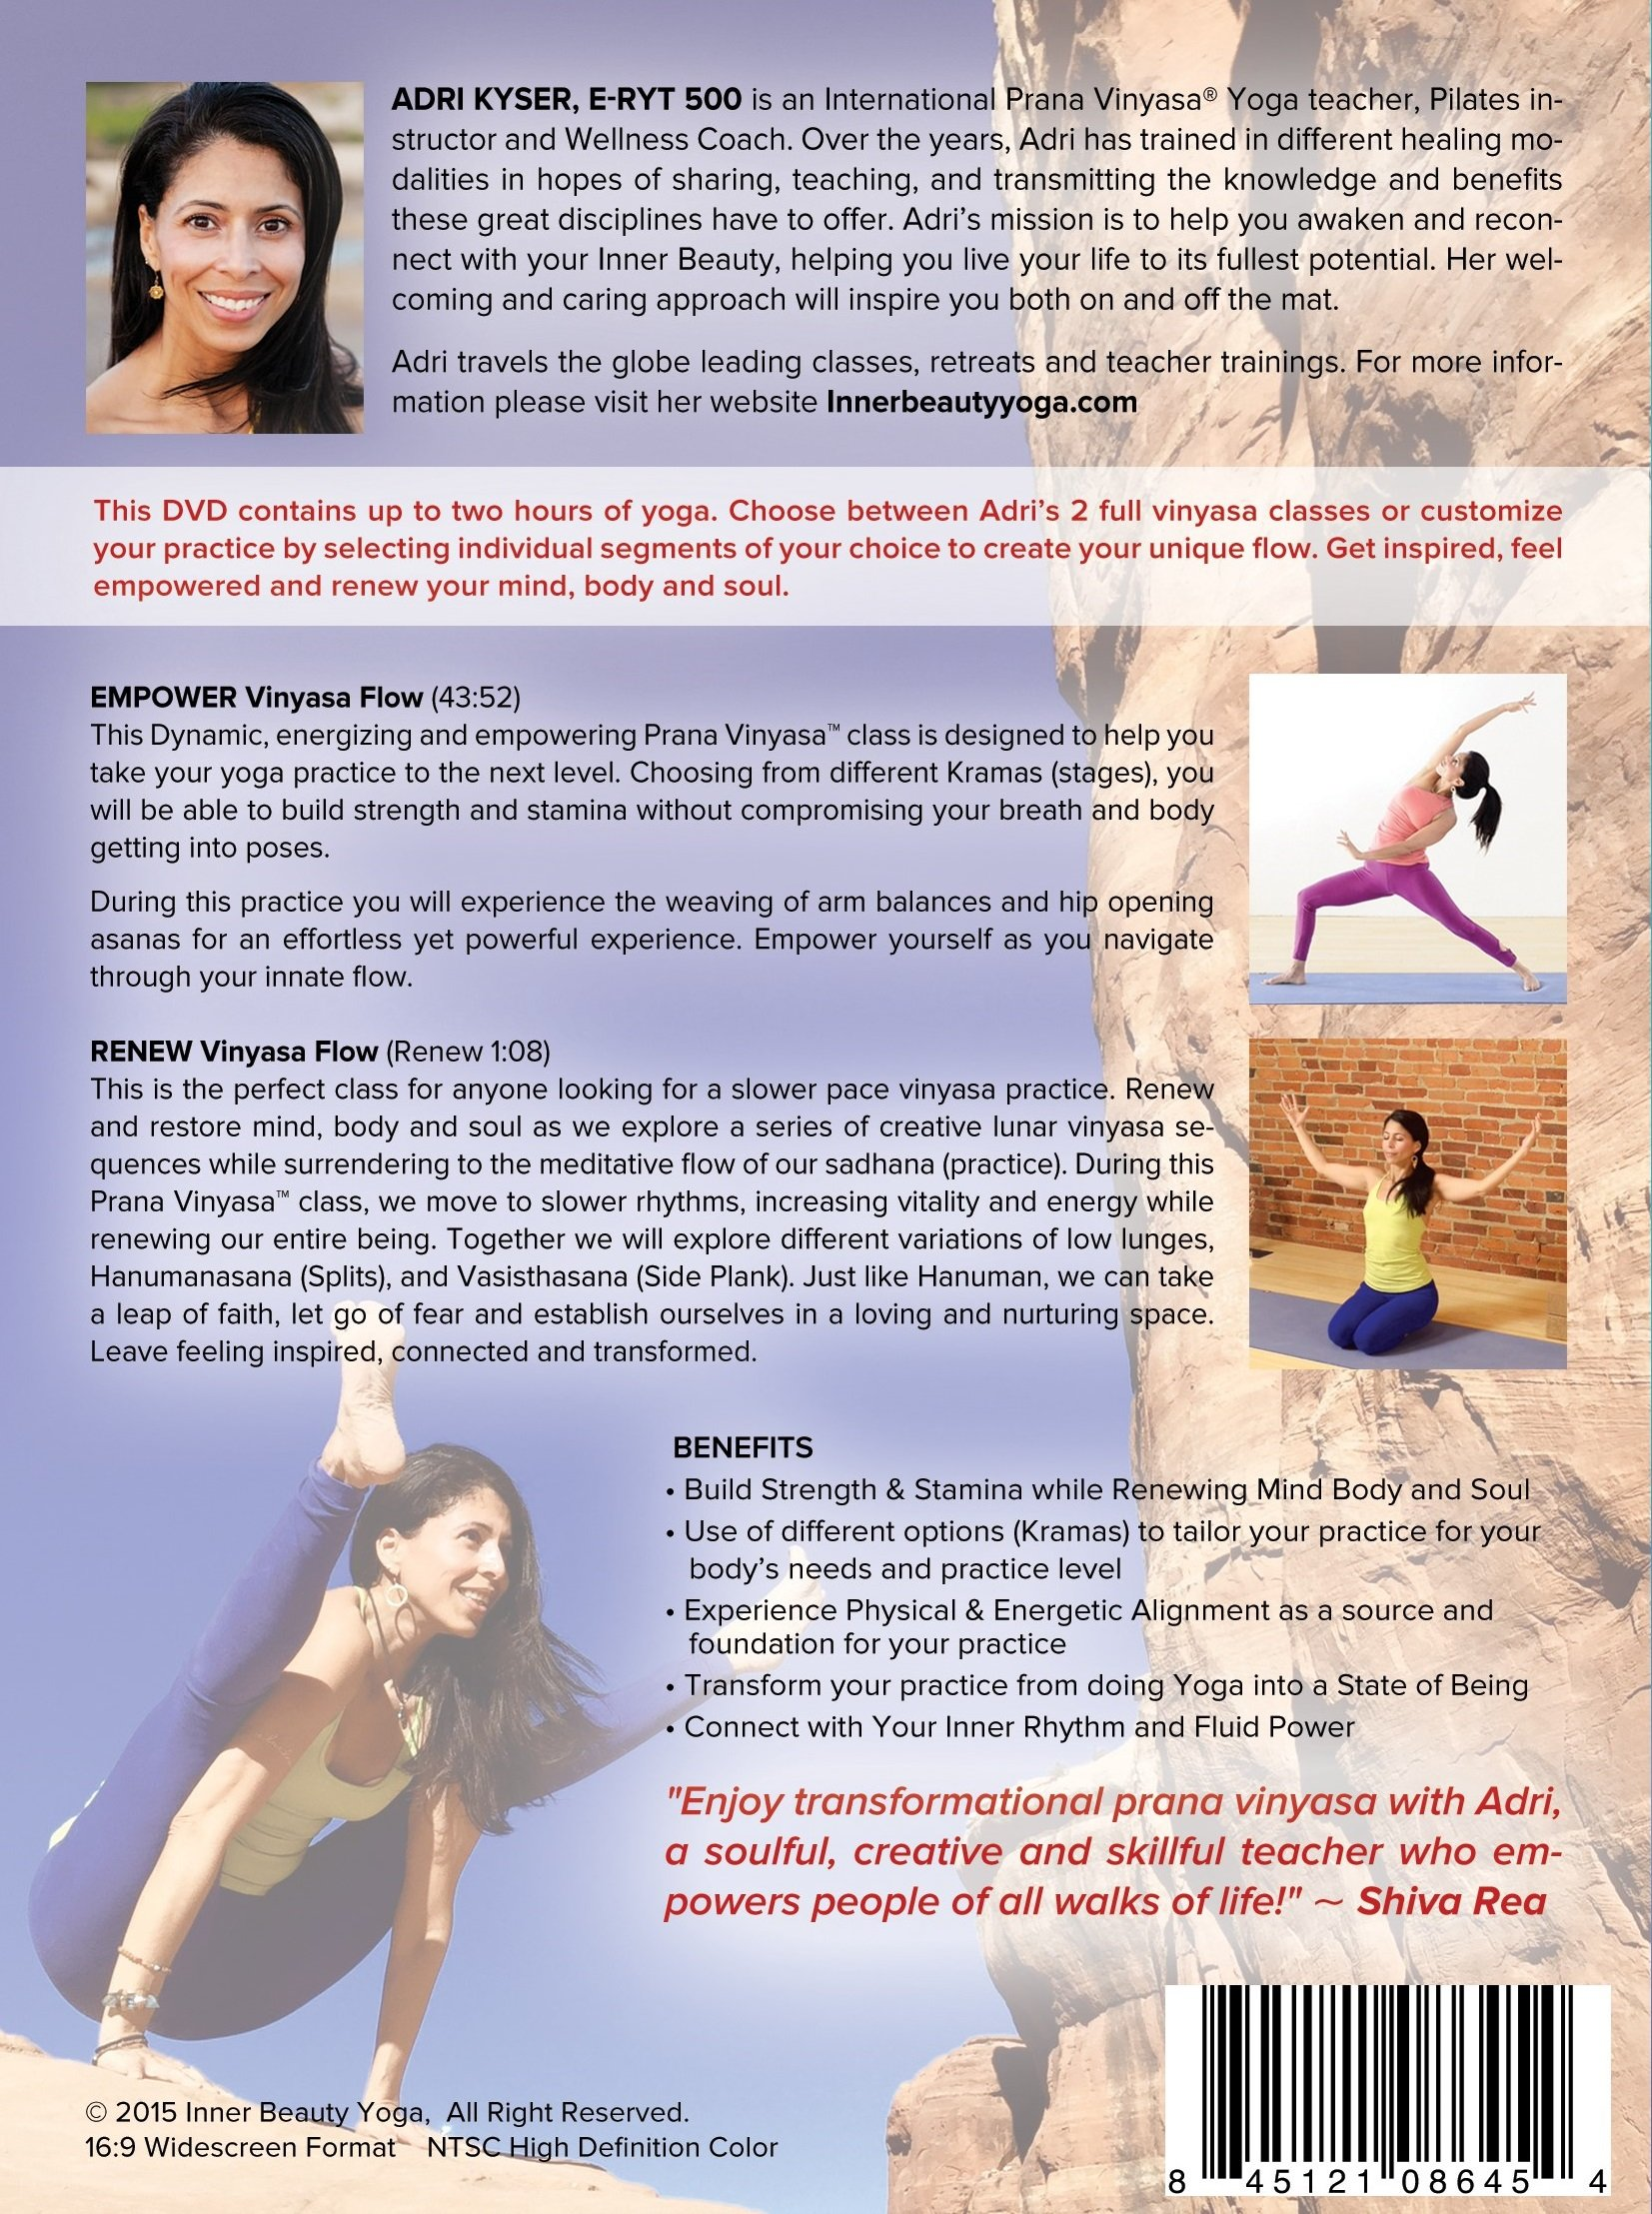 Empower & Renew Vinyasa Flow DVD by Adri Kyser (Image #2)